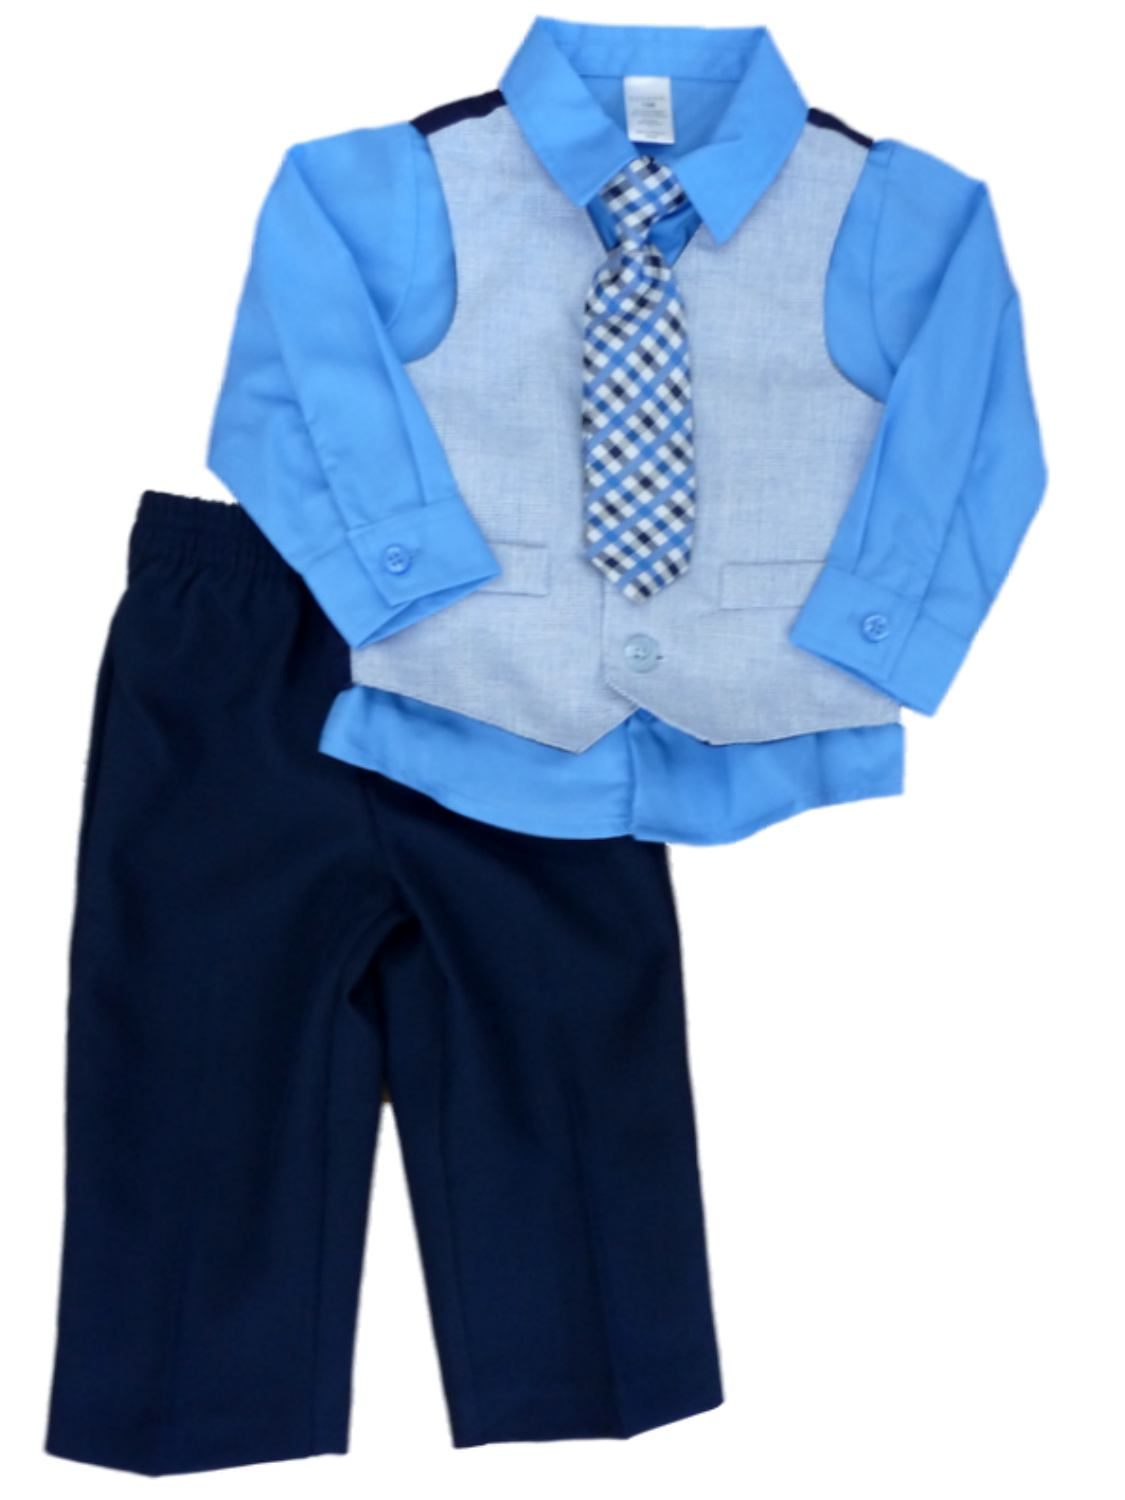 George Infant Toddler Boys 4 Piece Blue Dress Outfit Shirt Vest Tie Slacks